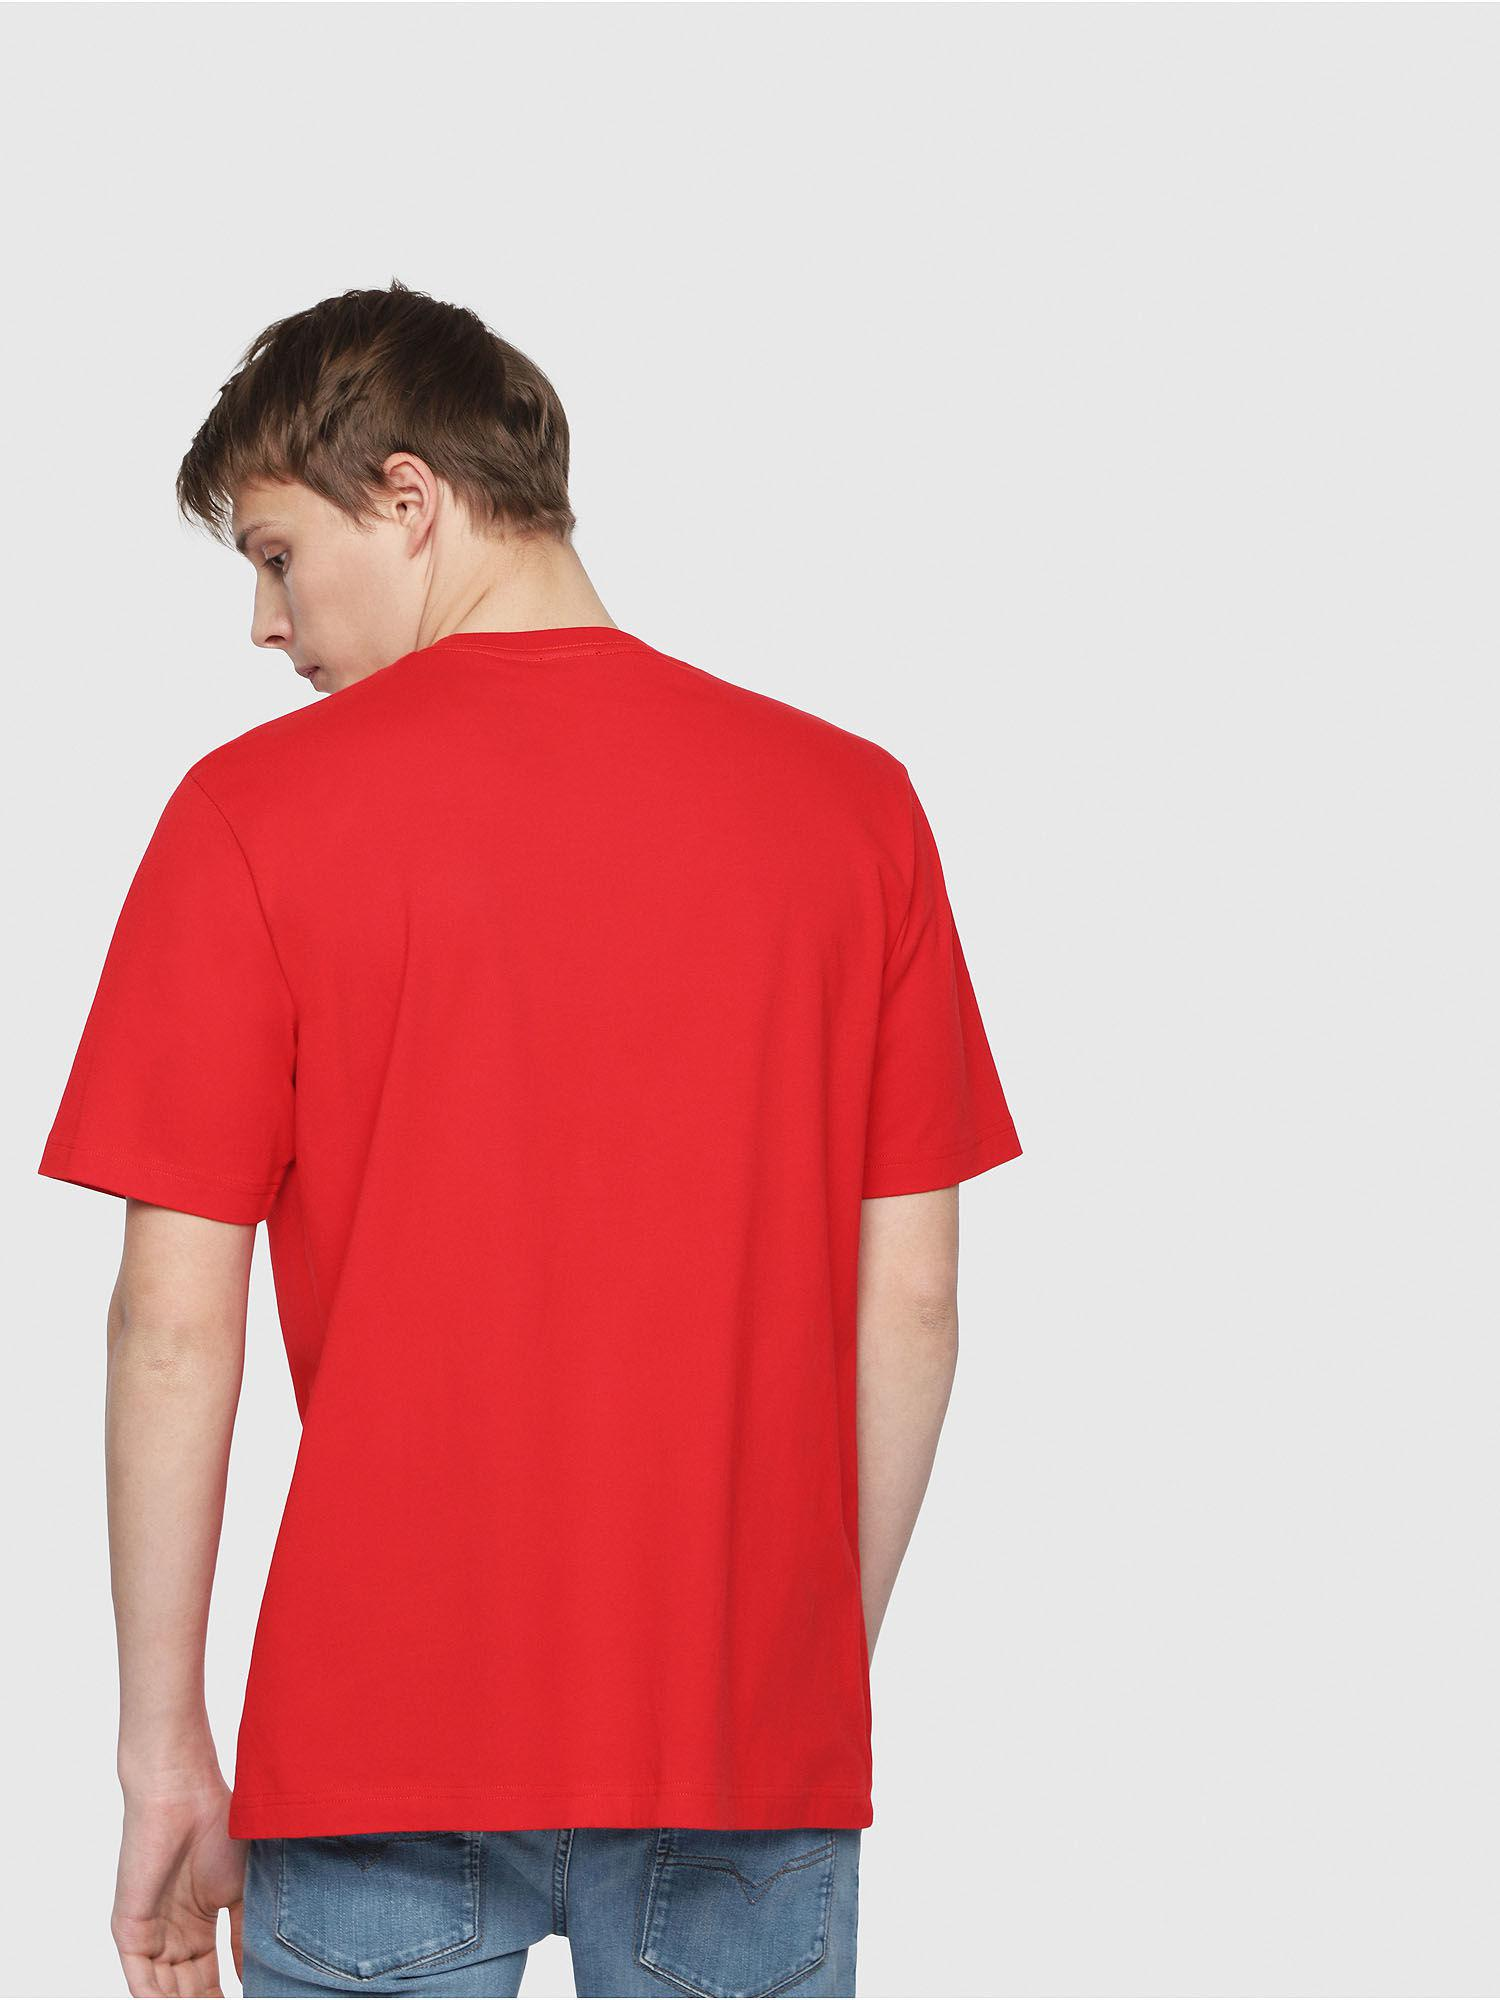 1aefd894 Lyst - Diesel T-shirt In Cotton With Lettering And Logo in Red for Men